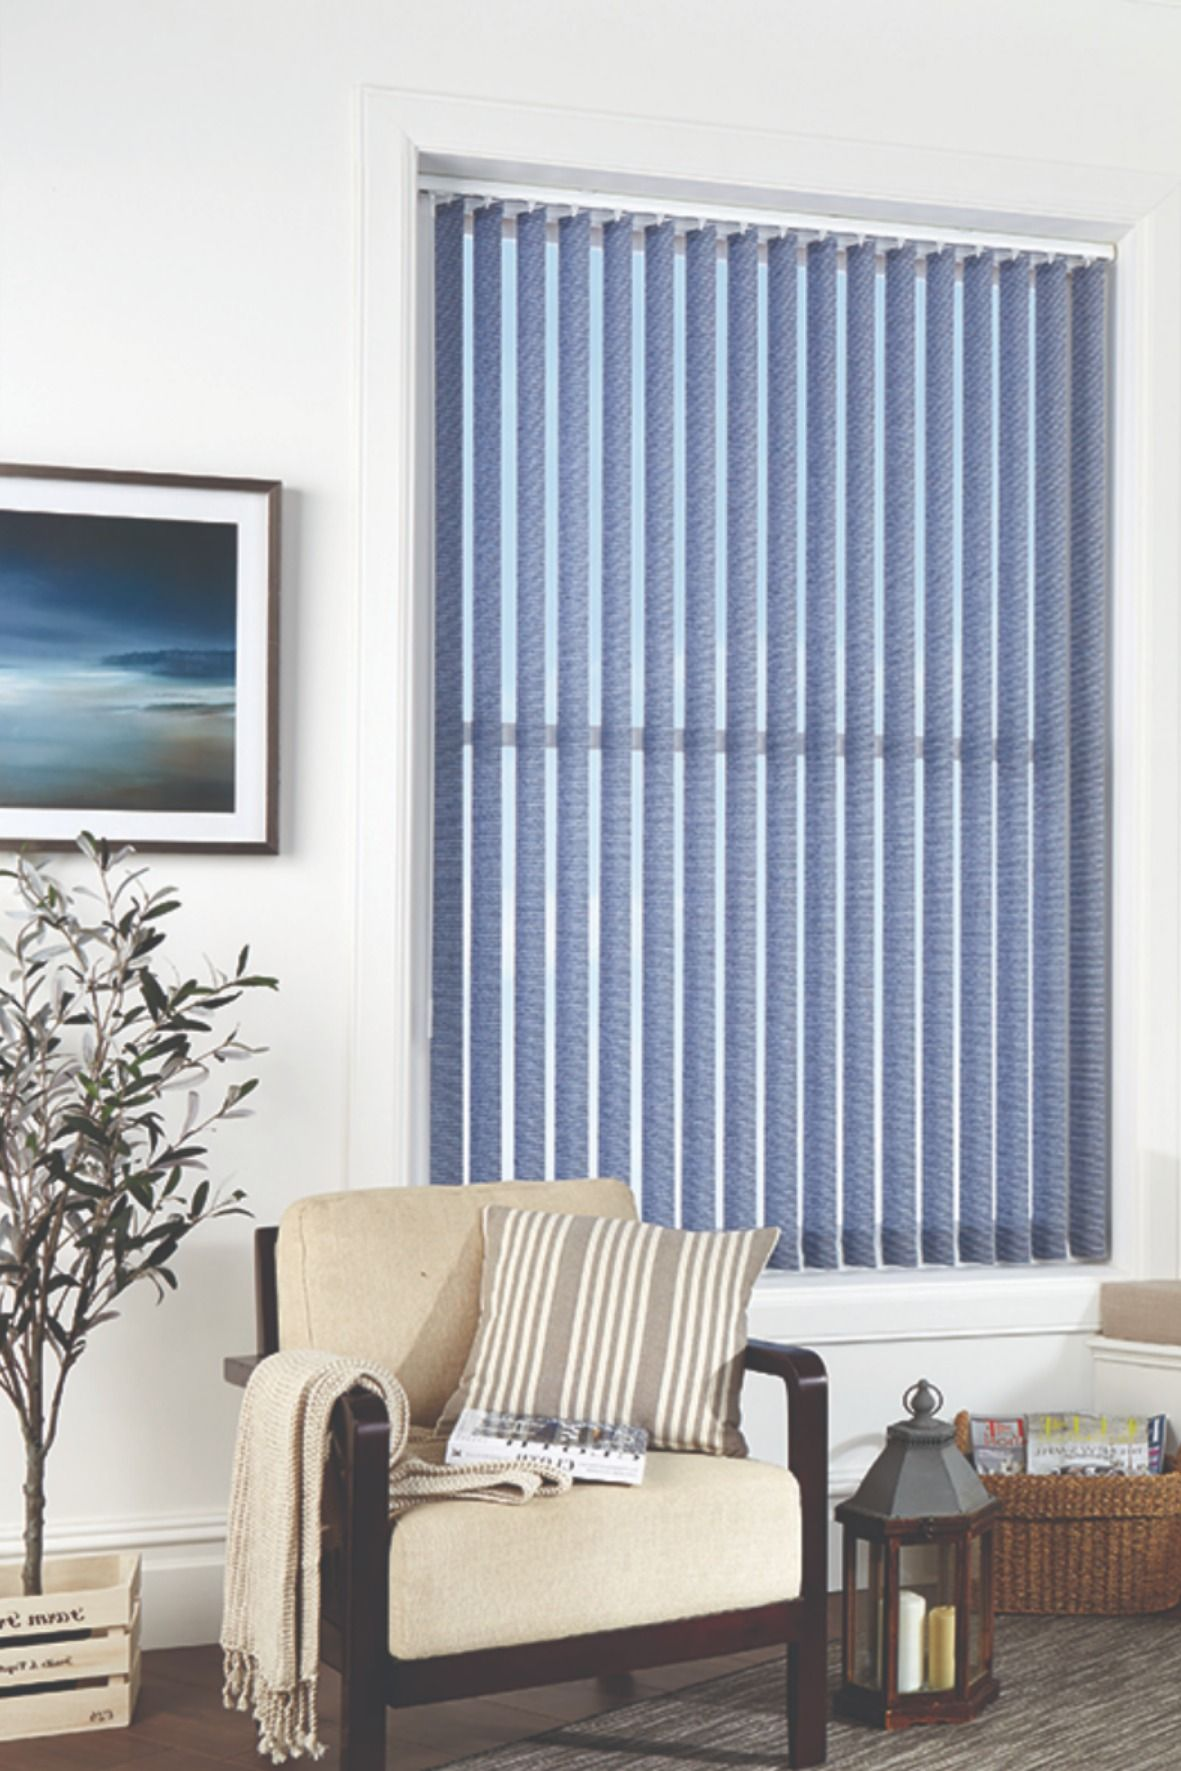 Vertical Blinds Are An Affordable And Stylish Option To Achieve Both Look And Functionality In Your Home They Offer Privacy In 2020 Vertical Blinds Blinds Home Decor